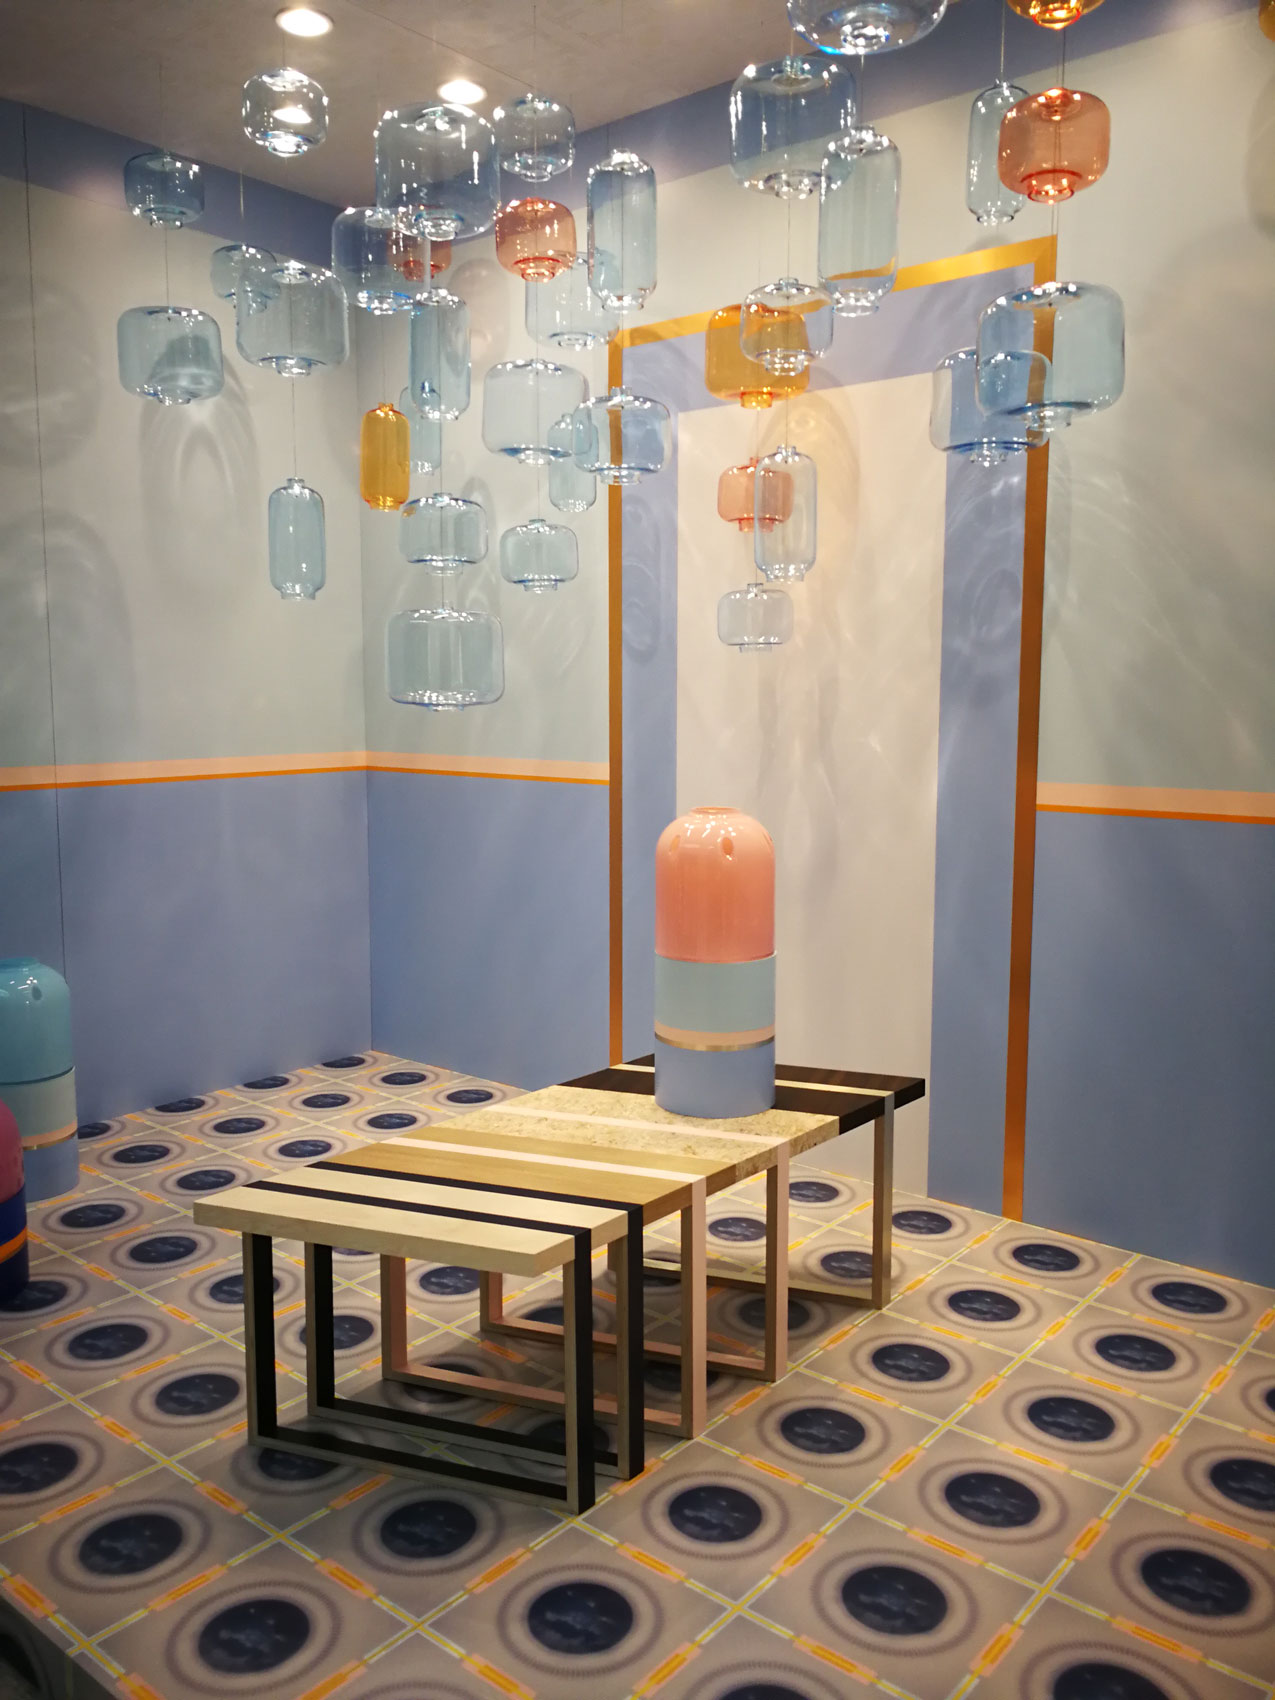 Milan Design Week 2018 Top Things I Loved - Authentic Interior Design Blog Palazzo Turati Dutch Design Masterly